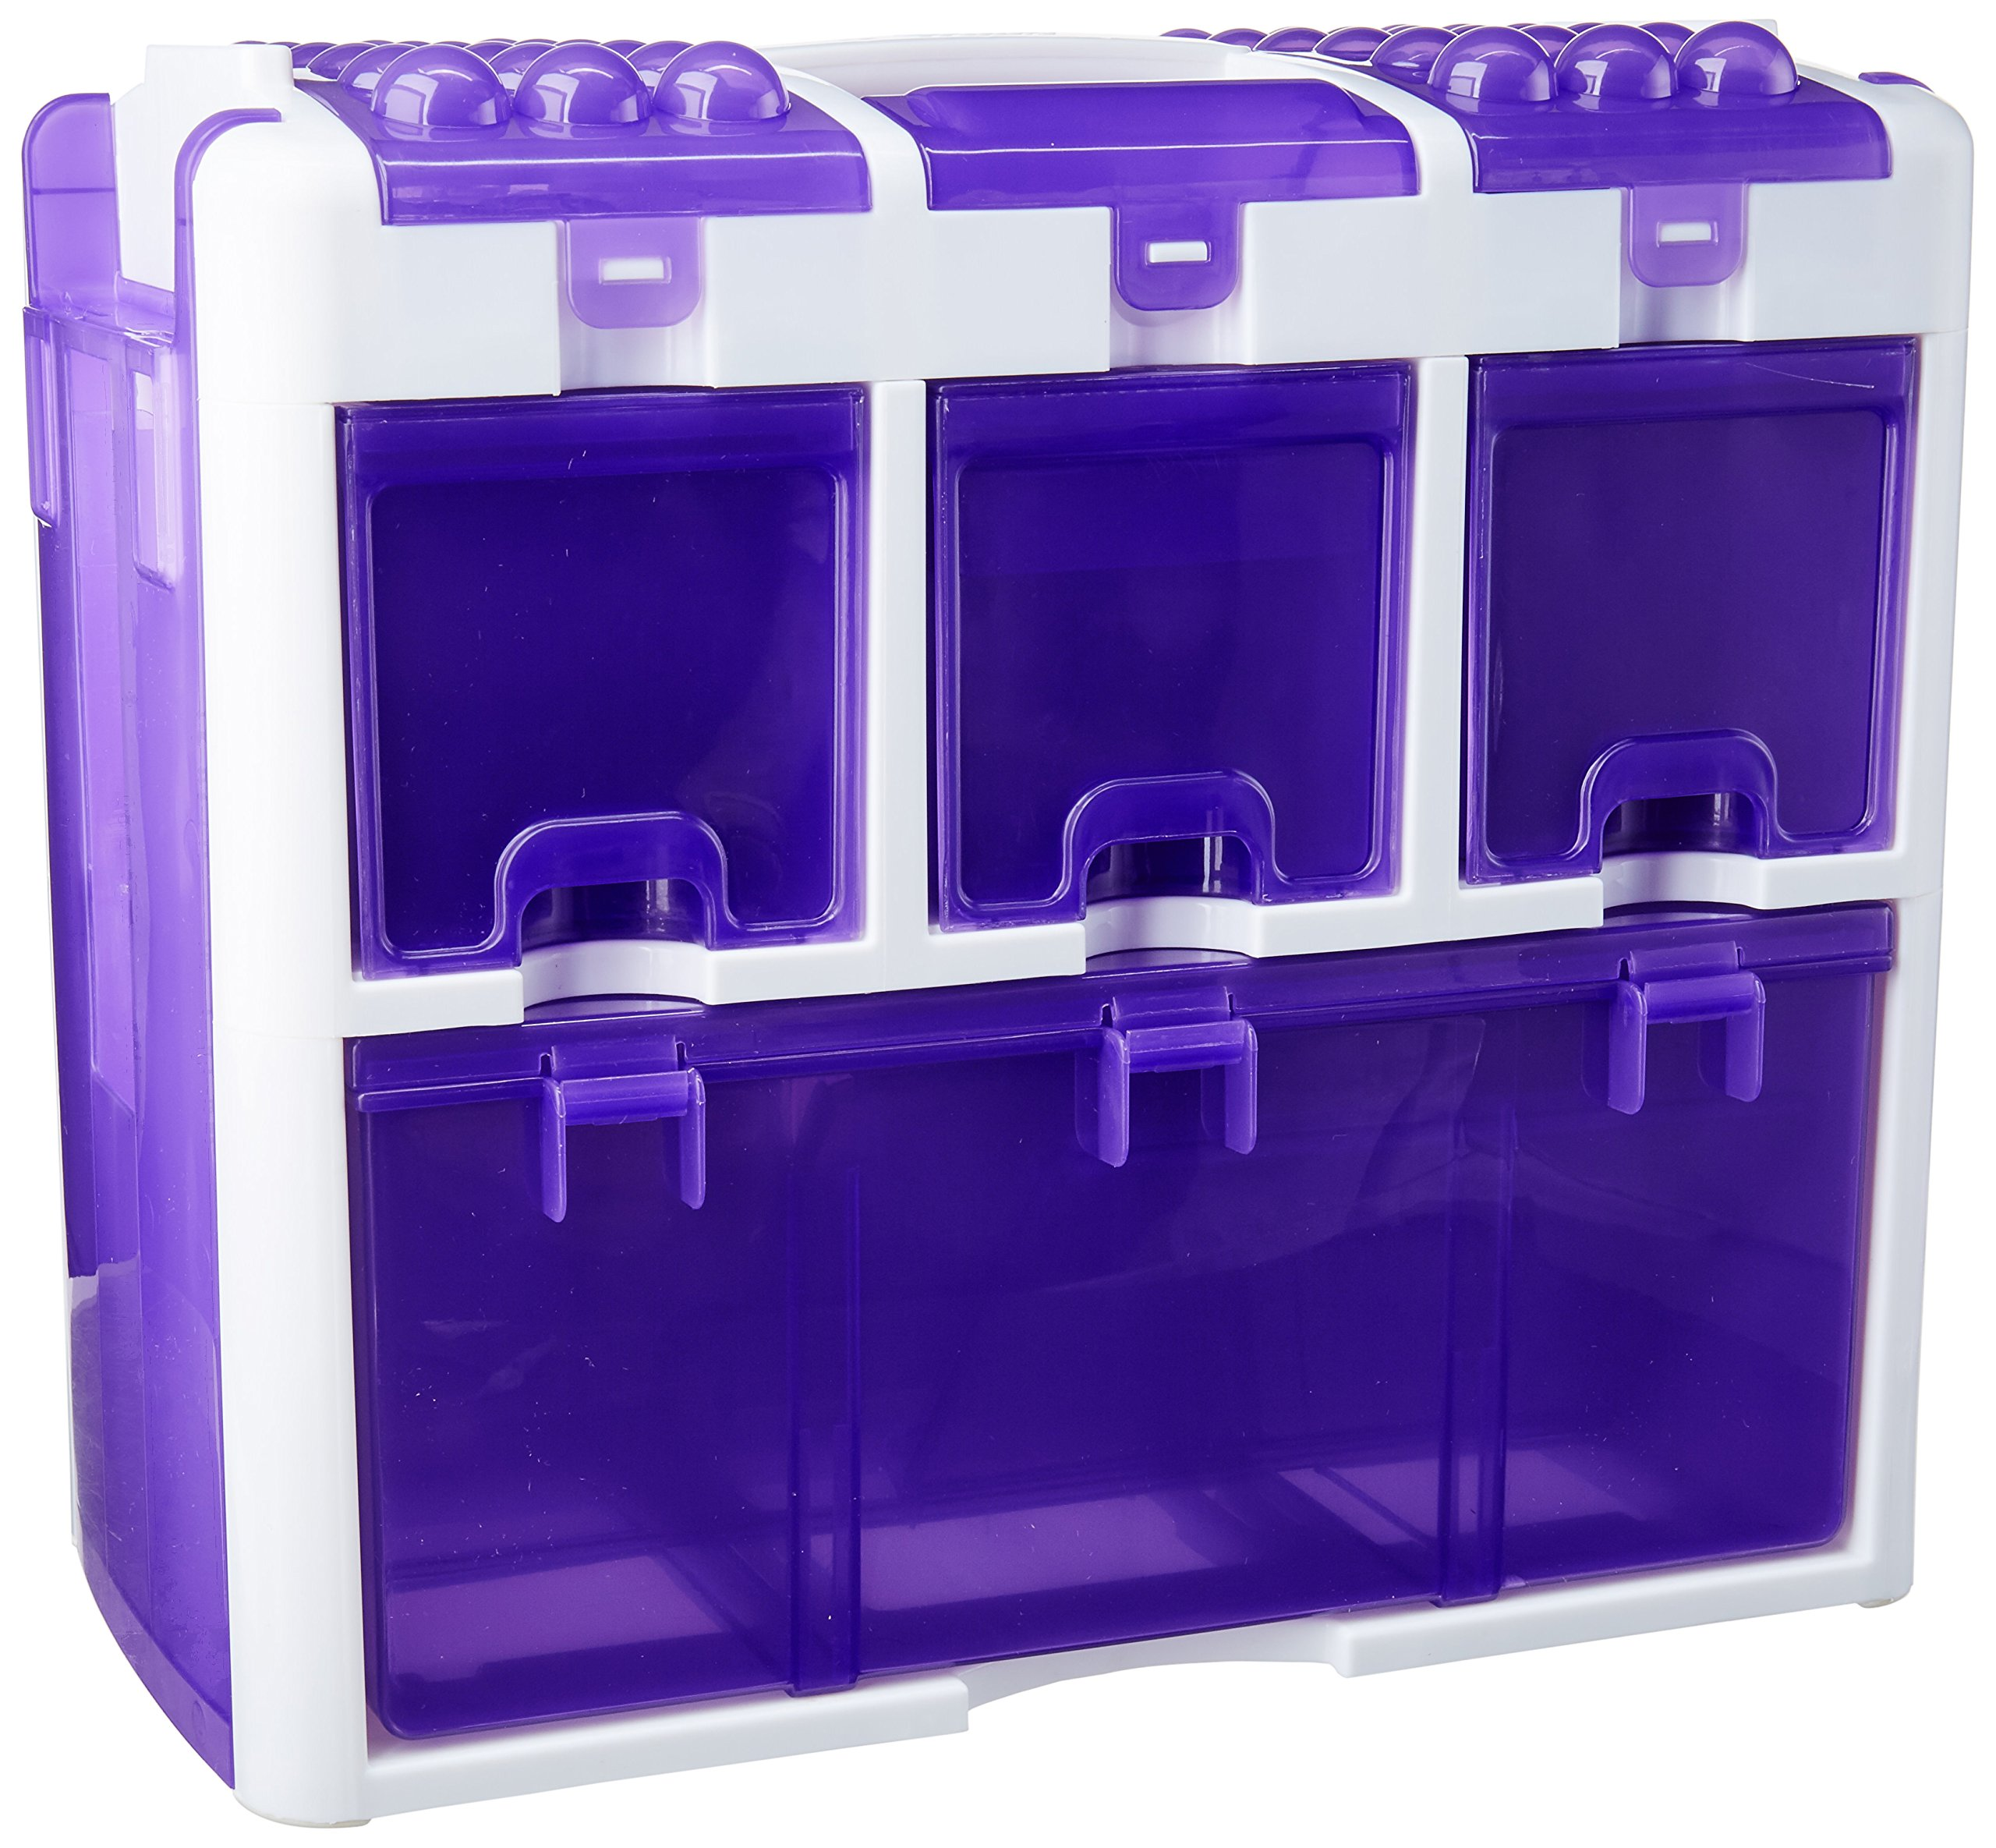 Cake Decorating Equipment Storage : Wilton Ultimate Cake Decorating Tool Caddy Storage ...